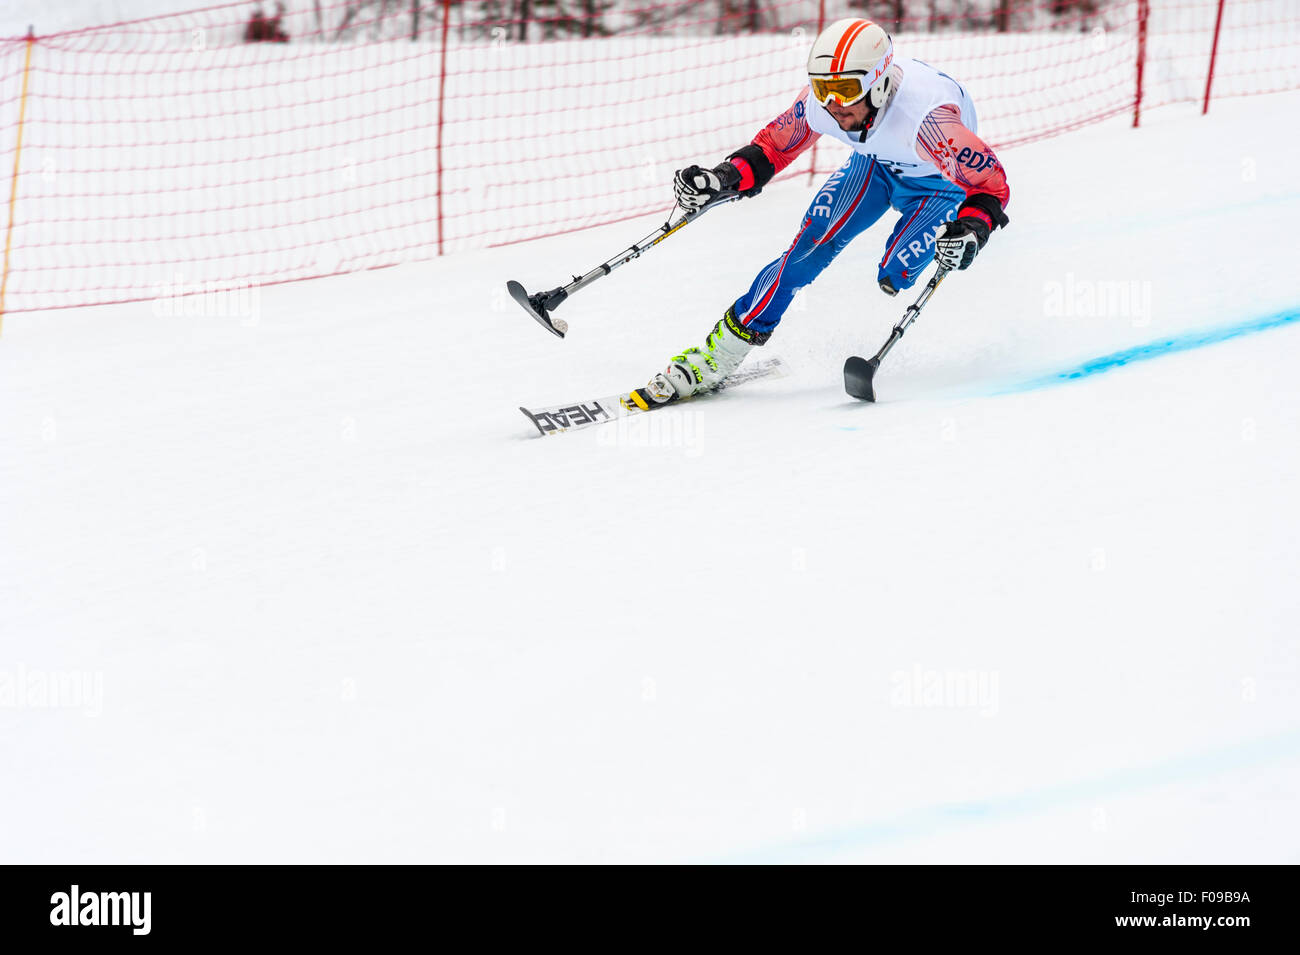 An amputee racing downhill in a giant slalom race - Stock Image